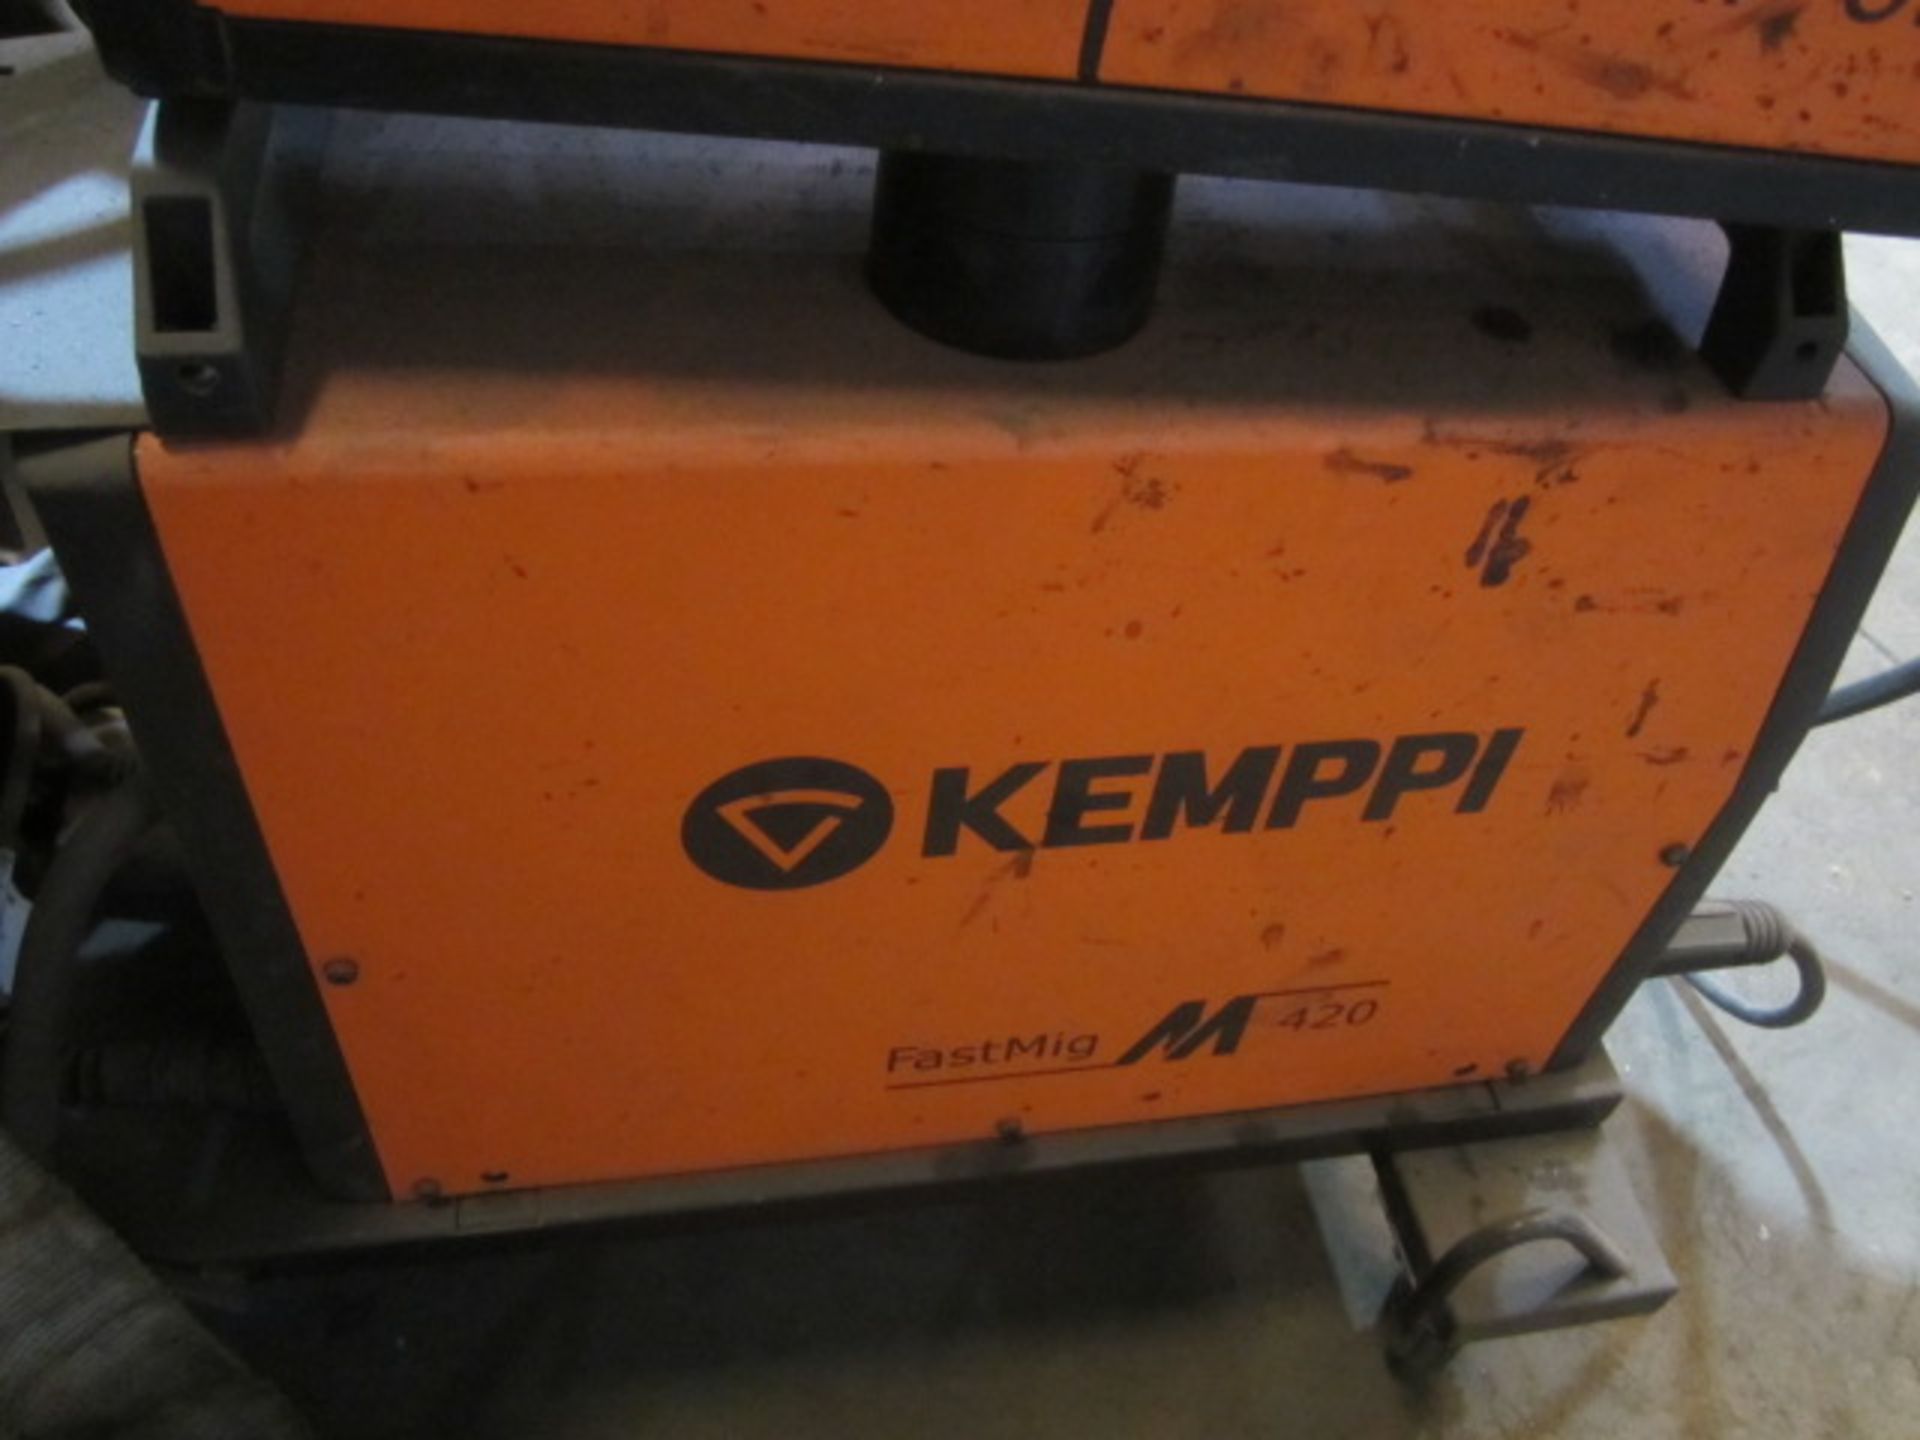 Kemppi Fast Mig M420 mig welder, serial no. 2674278, with Fast Mig MXF65 wire feeder, serial no. - Image 5 of 7